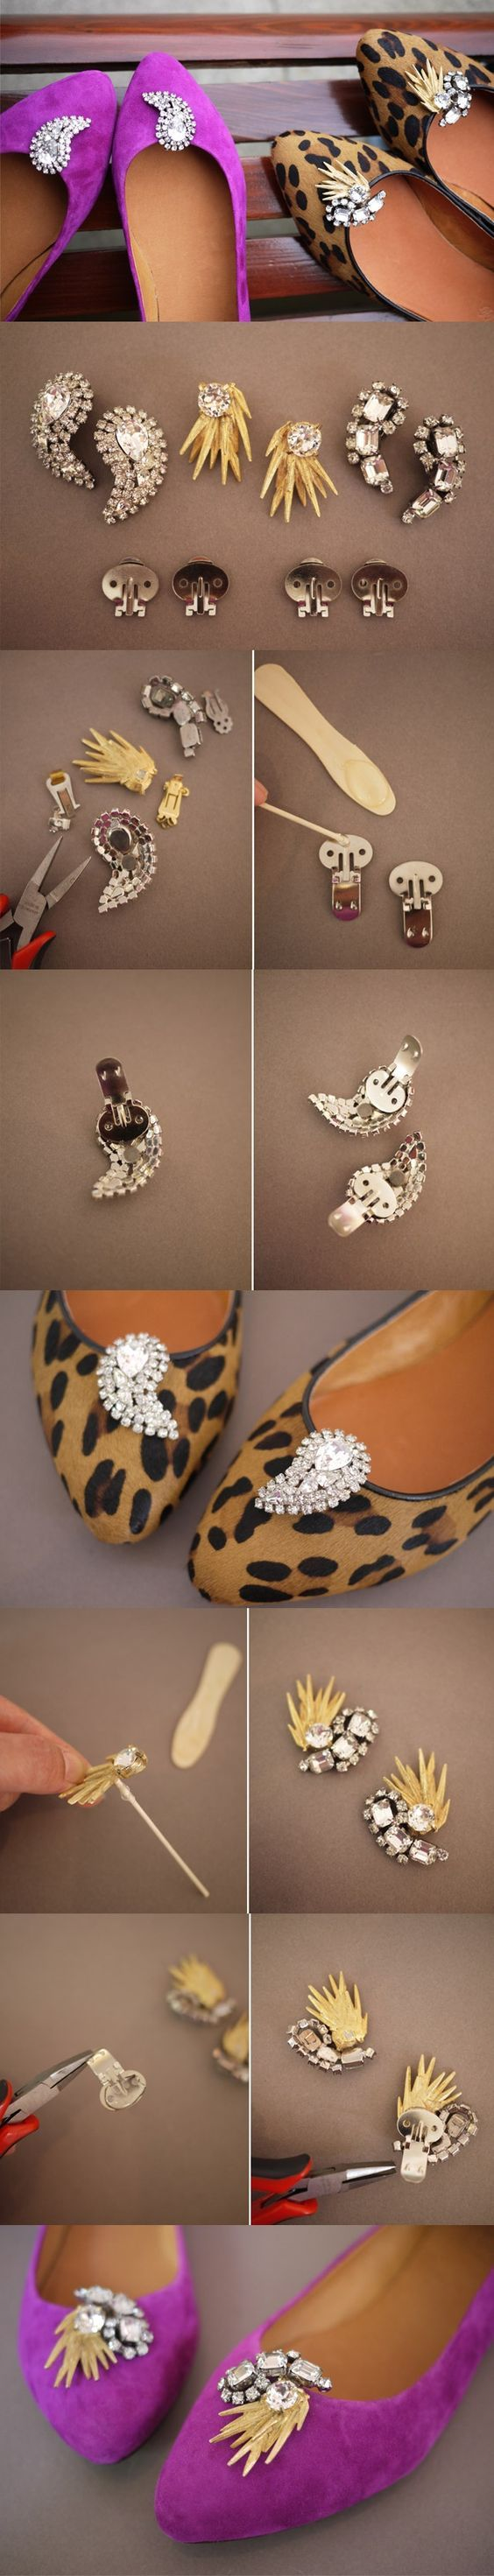 How to Make Your Own DIY Shoe Clips